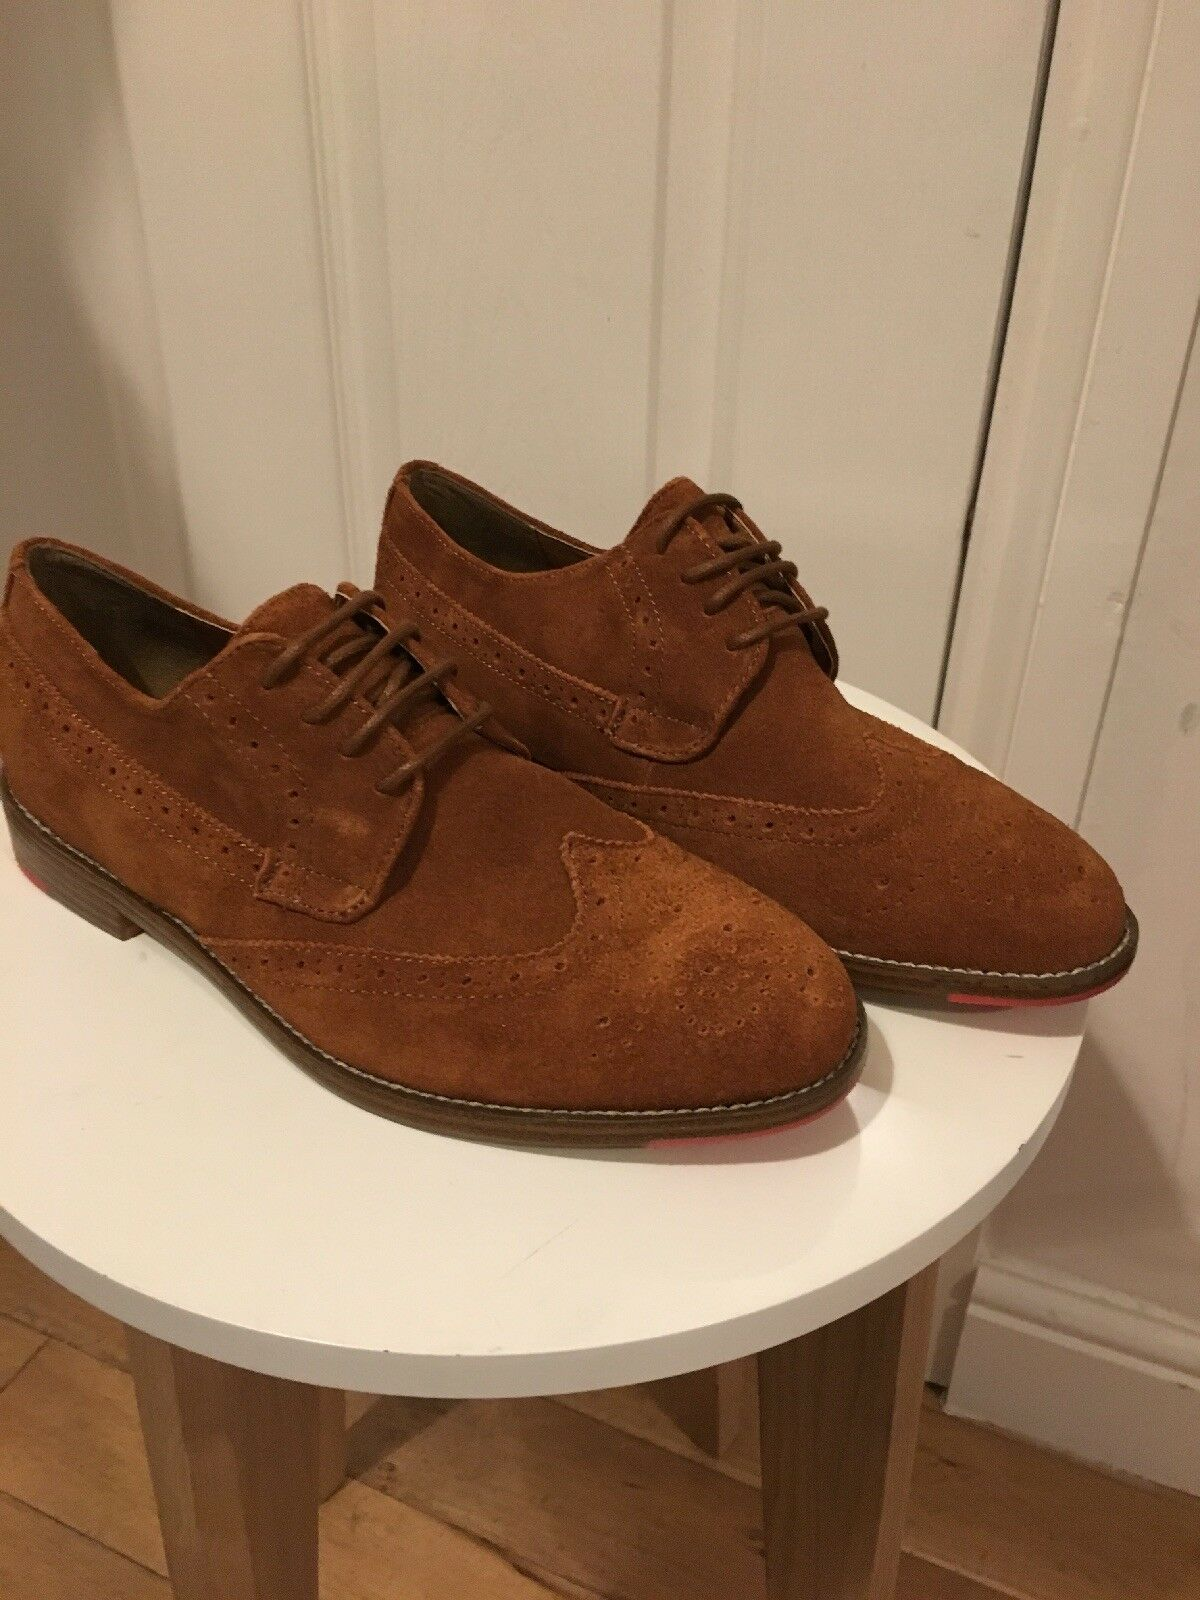 BNWT Office Mens shoes Size 6 100% Suede Leather Tan Brown New